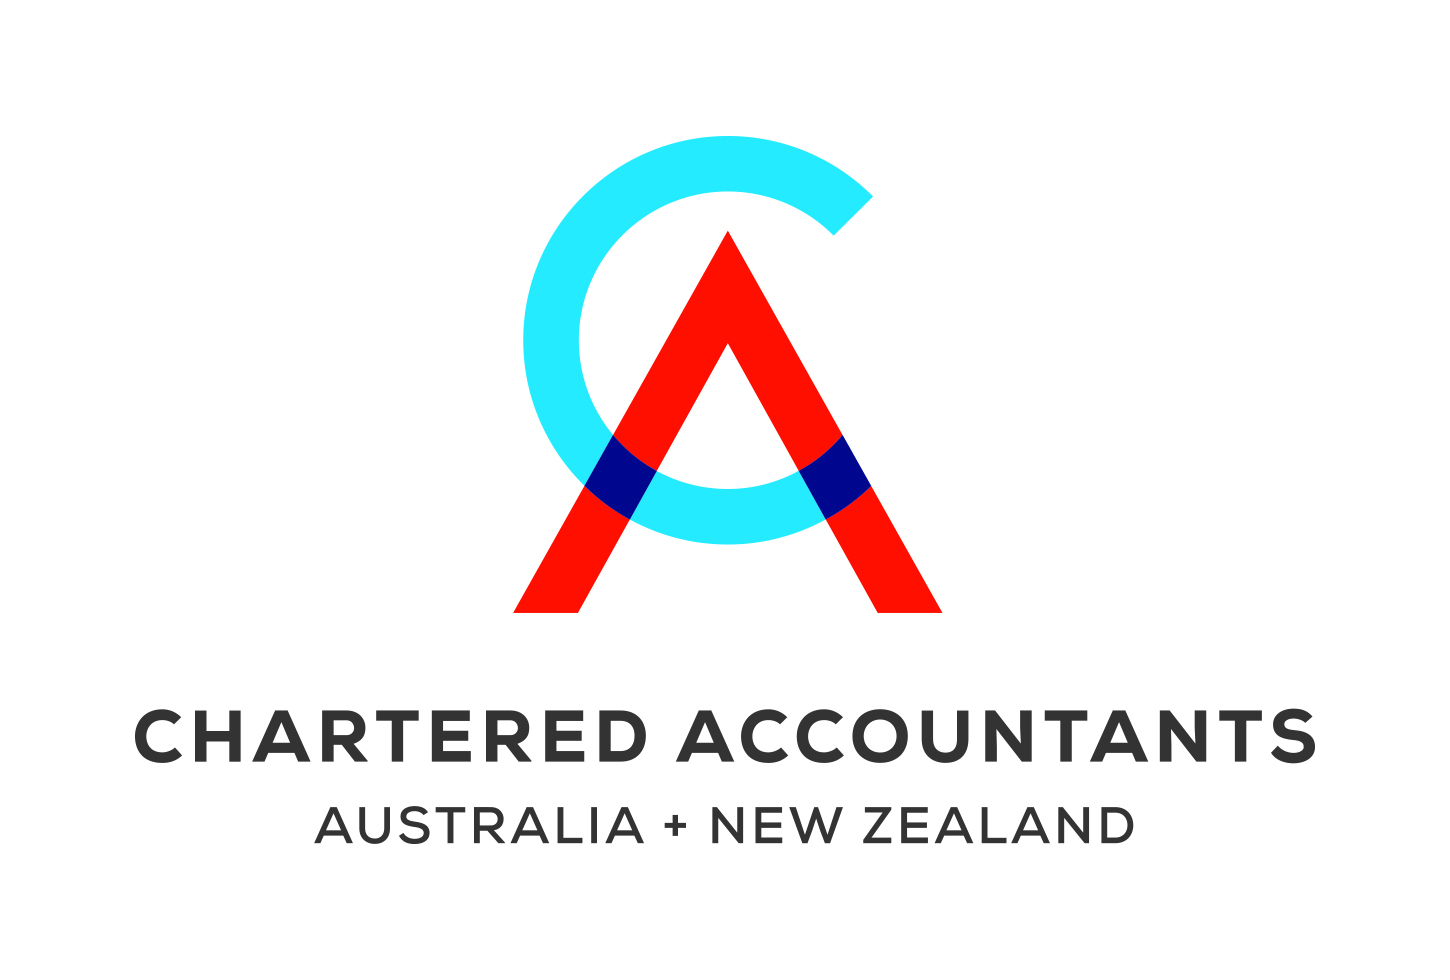 chartered accountants Taihape